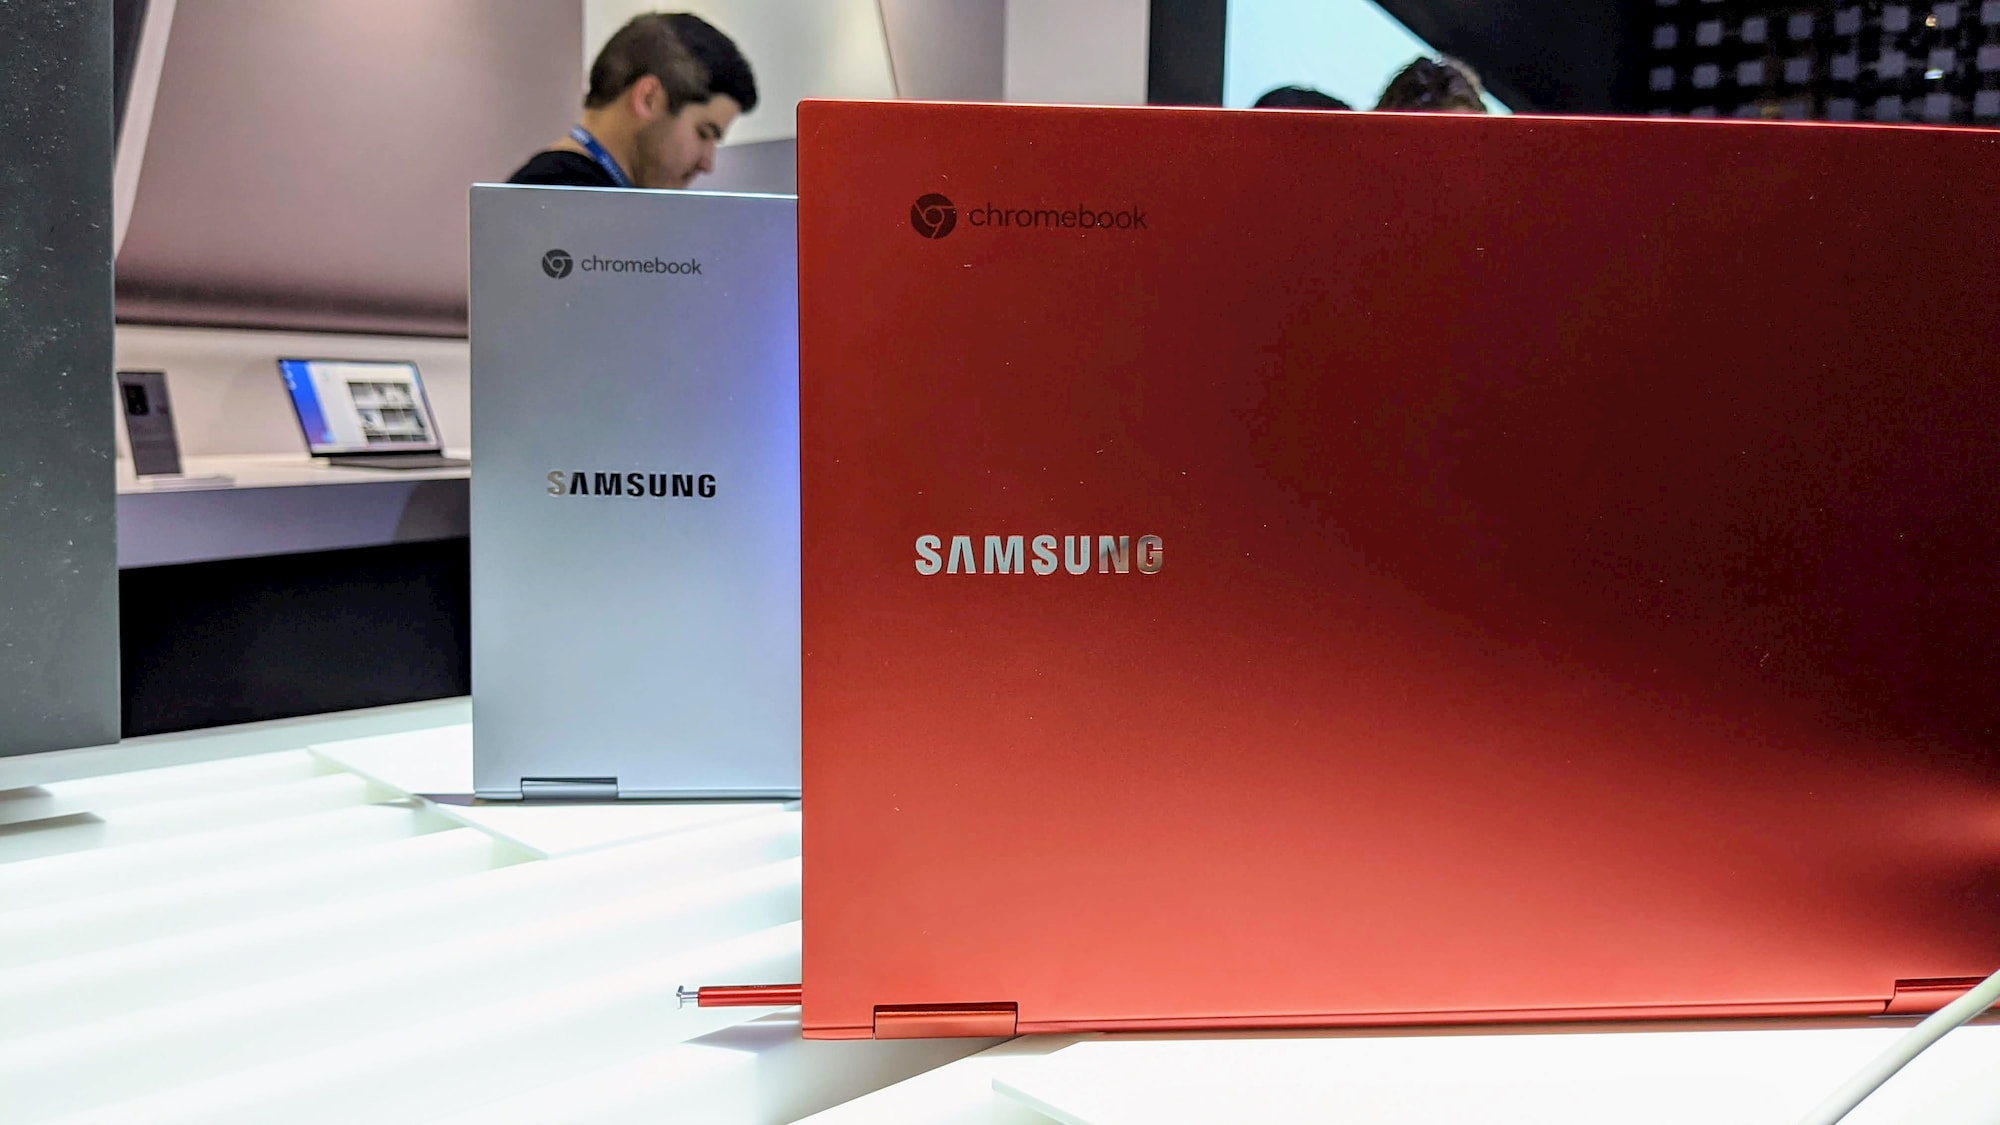 Samsung Galaxy Chromebook gets dedicated Best Buy & Samsung landing pages